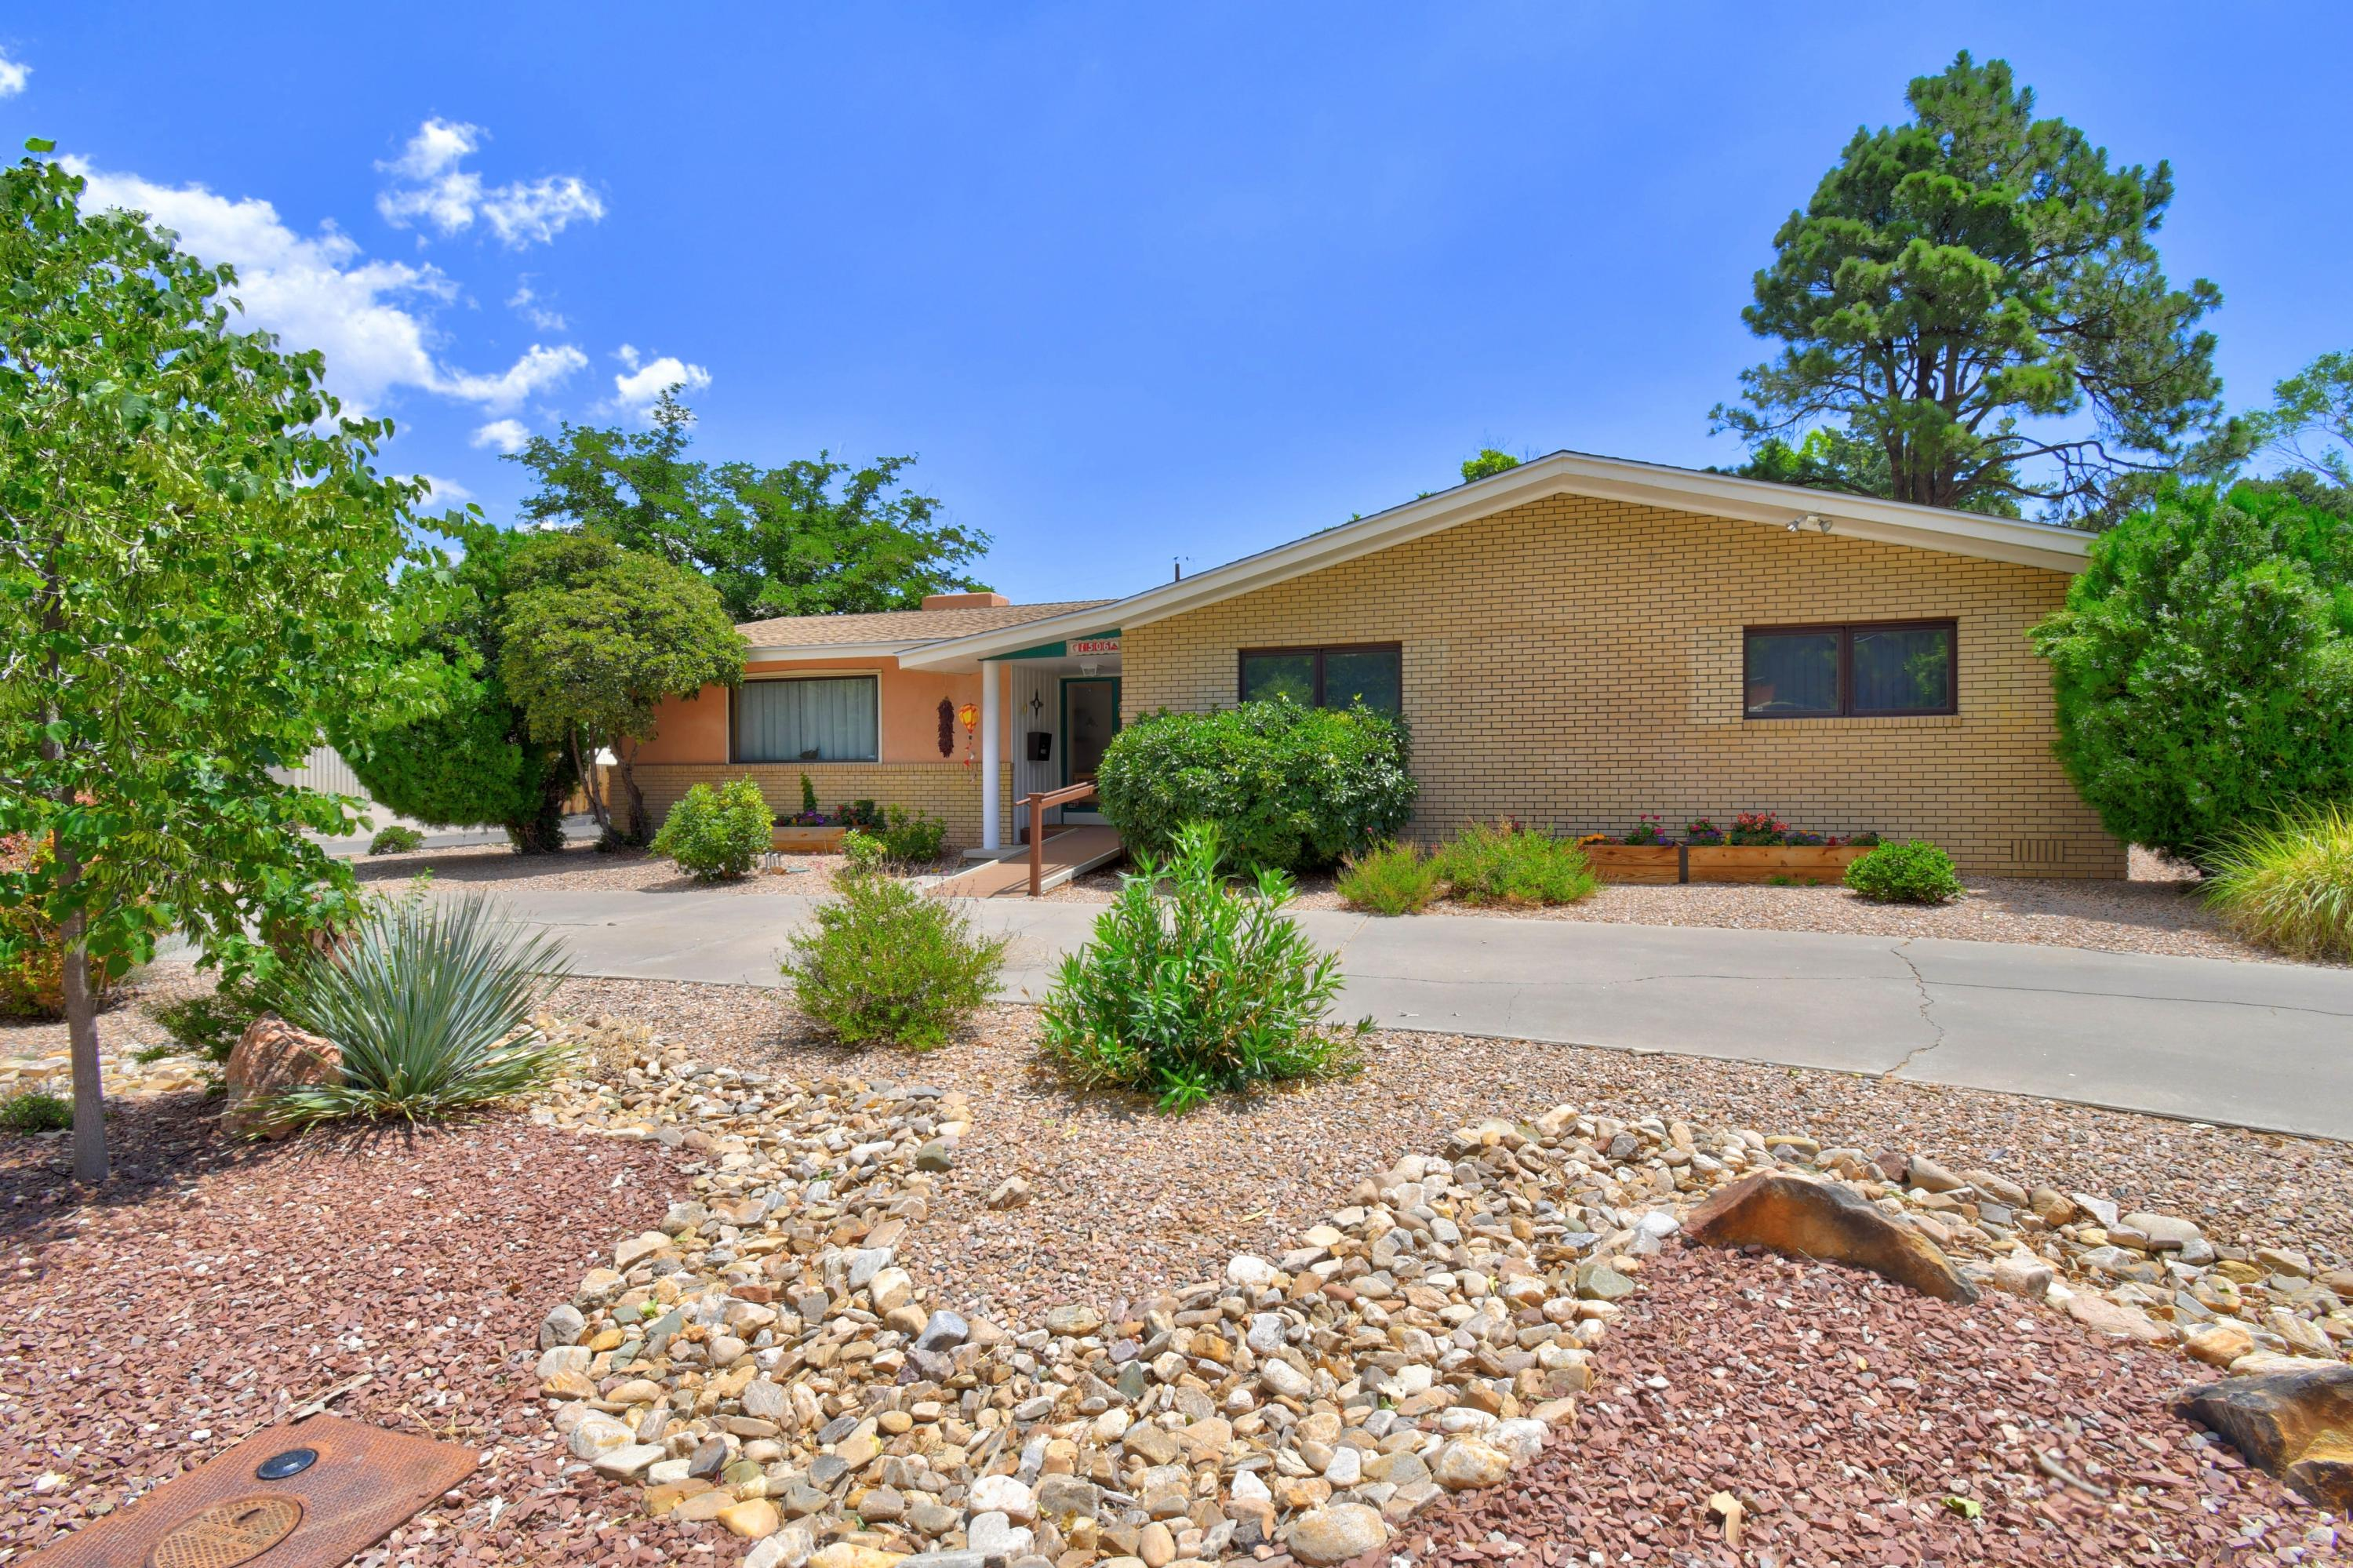 Sensational single level custom home on large corner  lot across from UNM golf course (1/4 acre). Loaded with character & charm, spacious floorplan with two large living rooms, tons of natural light, cozy fireplace, beautiful landscaping front & back, hardwood floors throughout, circular driveway on one side & 2 car driveway on the other side. Ideally located in Vista Larga with plenty of space to enjoy both inside & outside. Lovingly cared for & you can move in with peace of mind as all mechanics have been replaced. Newer roof, heating & refrigerated air cooling system, water heater, sprinkler & drip system, electrical in 2018.  Newer windows. Doors have been widened.  Master bathroom has been updated with a roll-in shower. 2 car garage is oversized with vaulted ceiling.